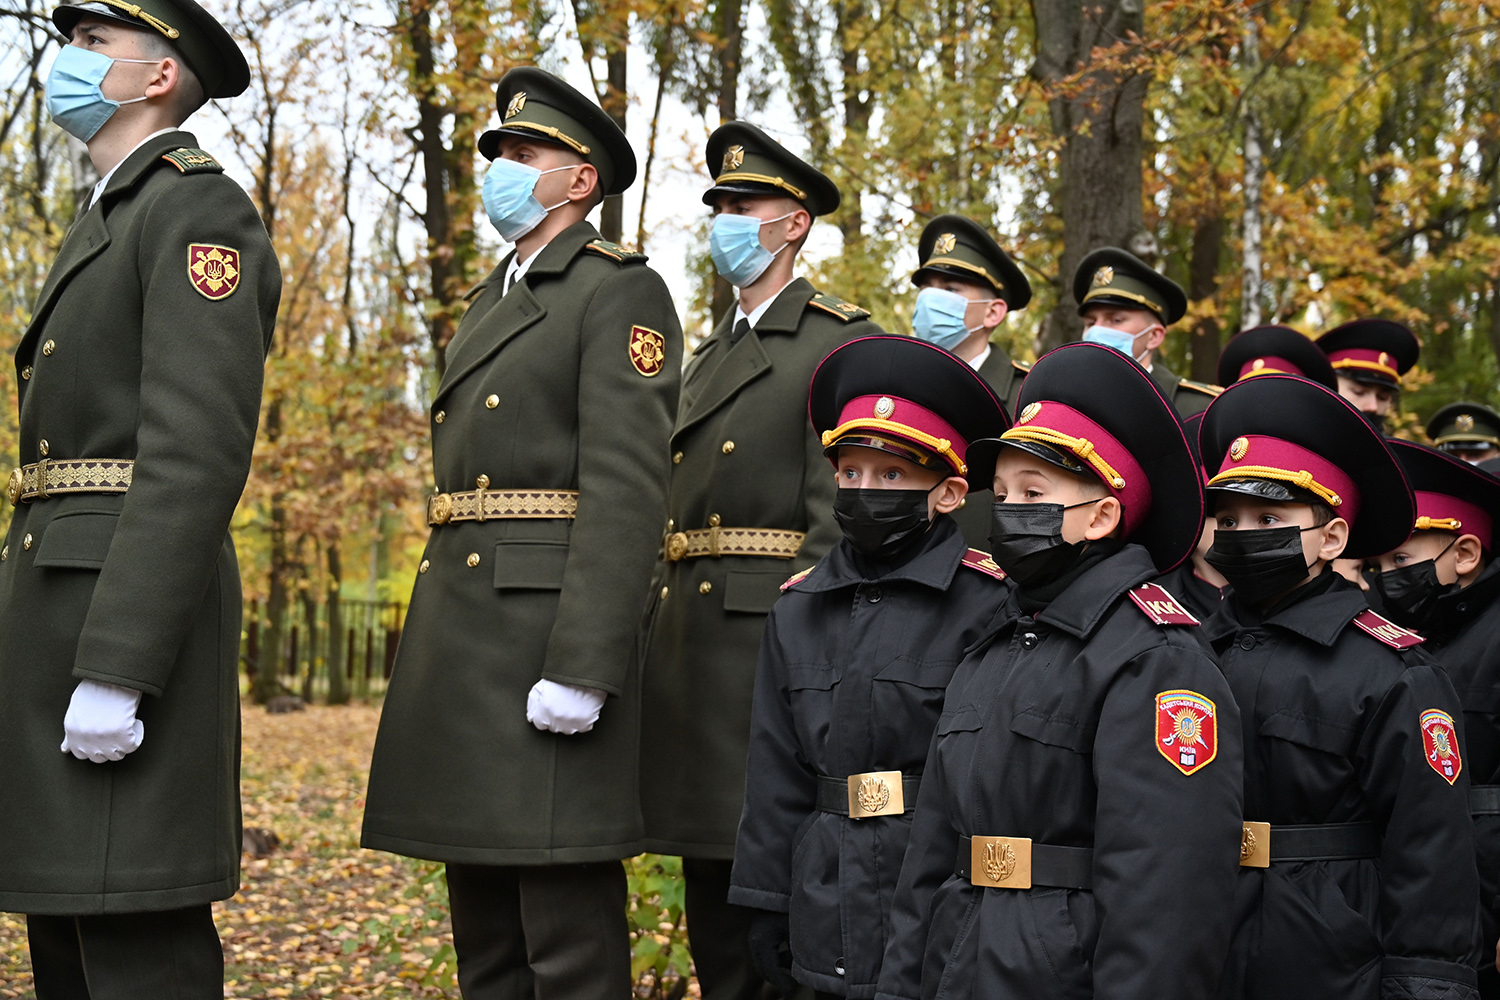 Young Ukrainian cadets of the military boarding school in Kiev attend a ceremony Nov. 6. Eighty-five cadets, some of them children of the servicemen who perished during the war with Russia-backed separatists, took shoulders straps and swore an oath during the ceremony. SERGEI SUPINSKY/AFP via Getty Images